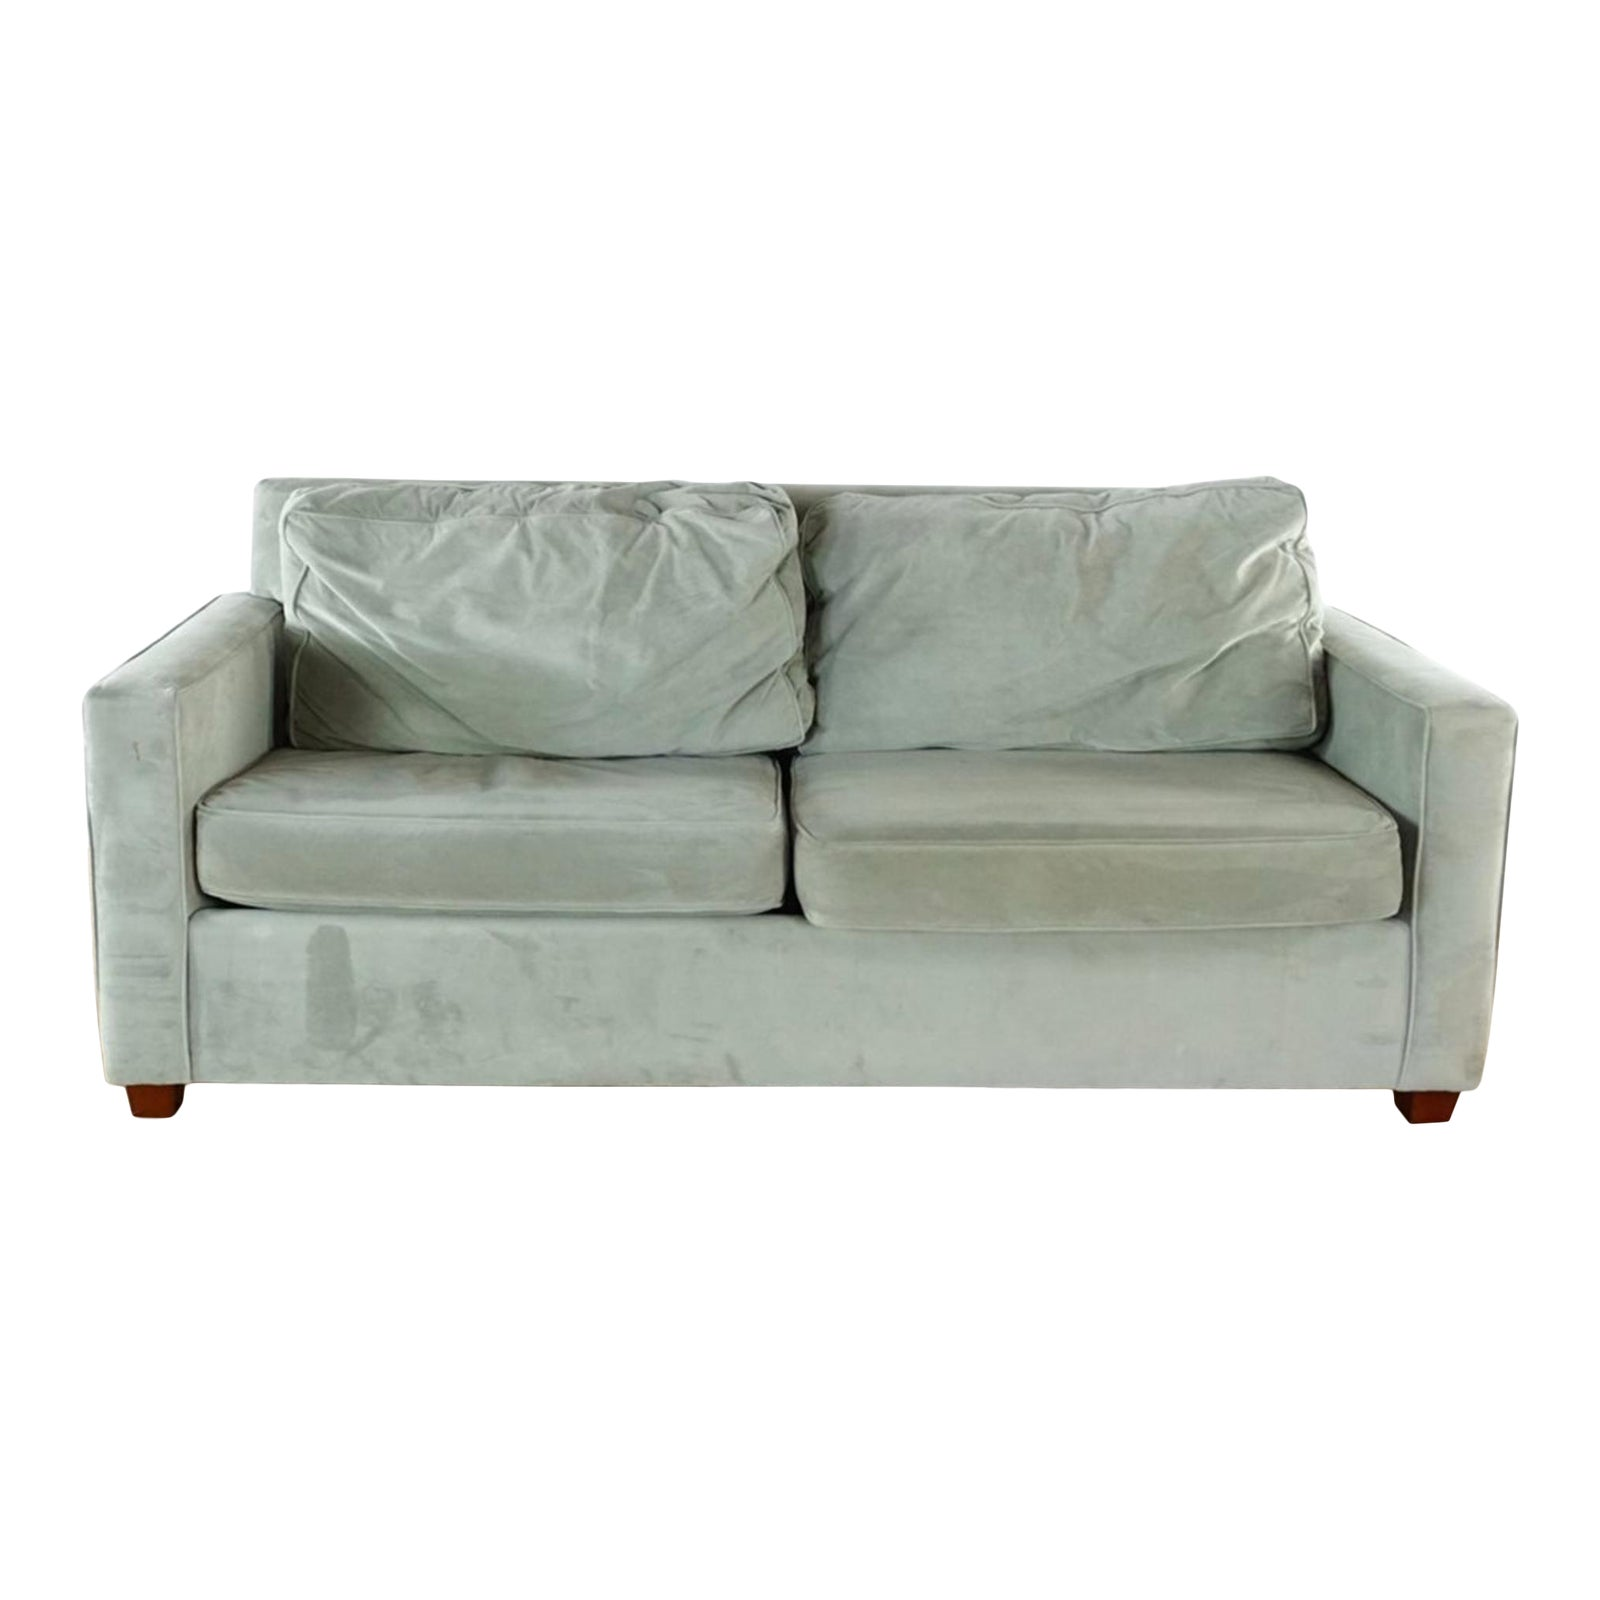 Modern West Elm Contemporary Gray Upholstered Two Cushion Sleeper Sofa